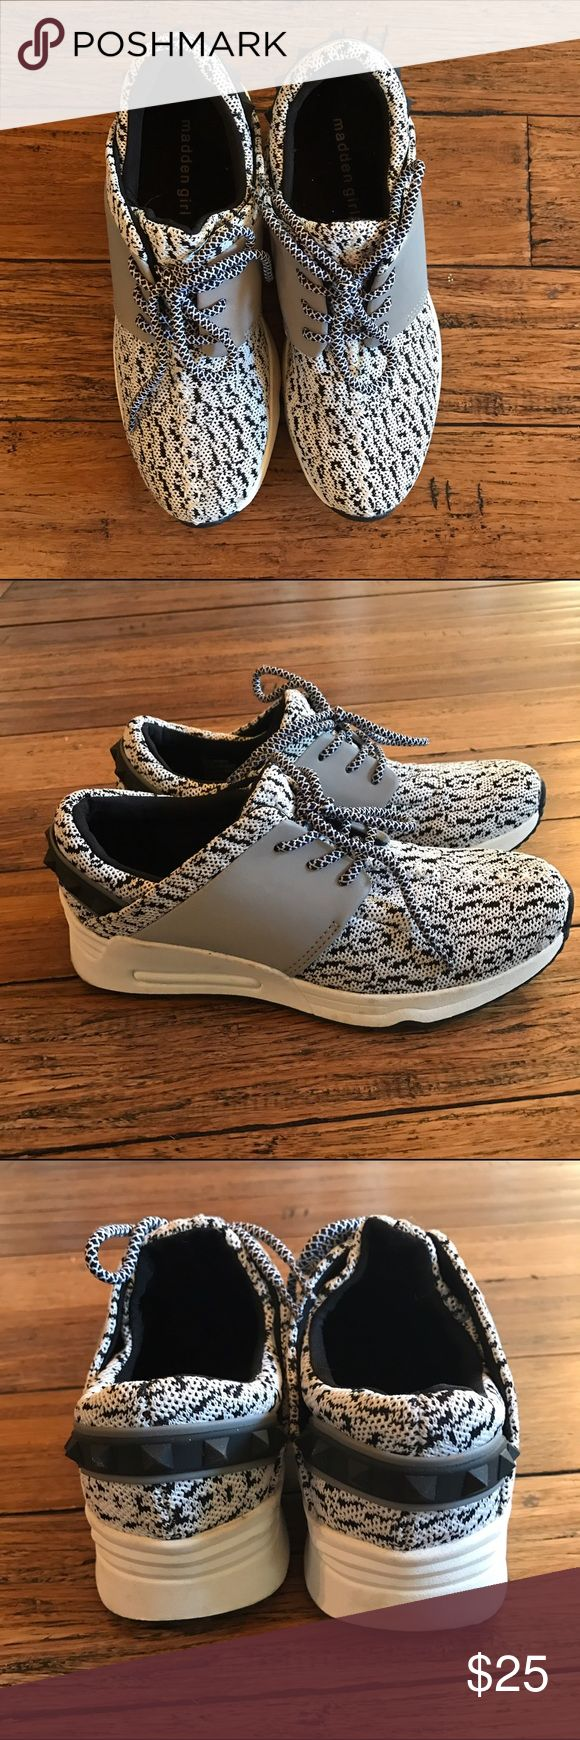 Madden girl athletic shoes 6.5 Madden girl shoes size 6.5. Very cute, just fit too large for my feet! Have been only worn once to a store before deciding they weren't for me! Very cute. Fashion sneakers/athletic shoes/tennis shoes. Madden Girl Shoes Athletic Shoes